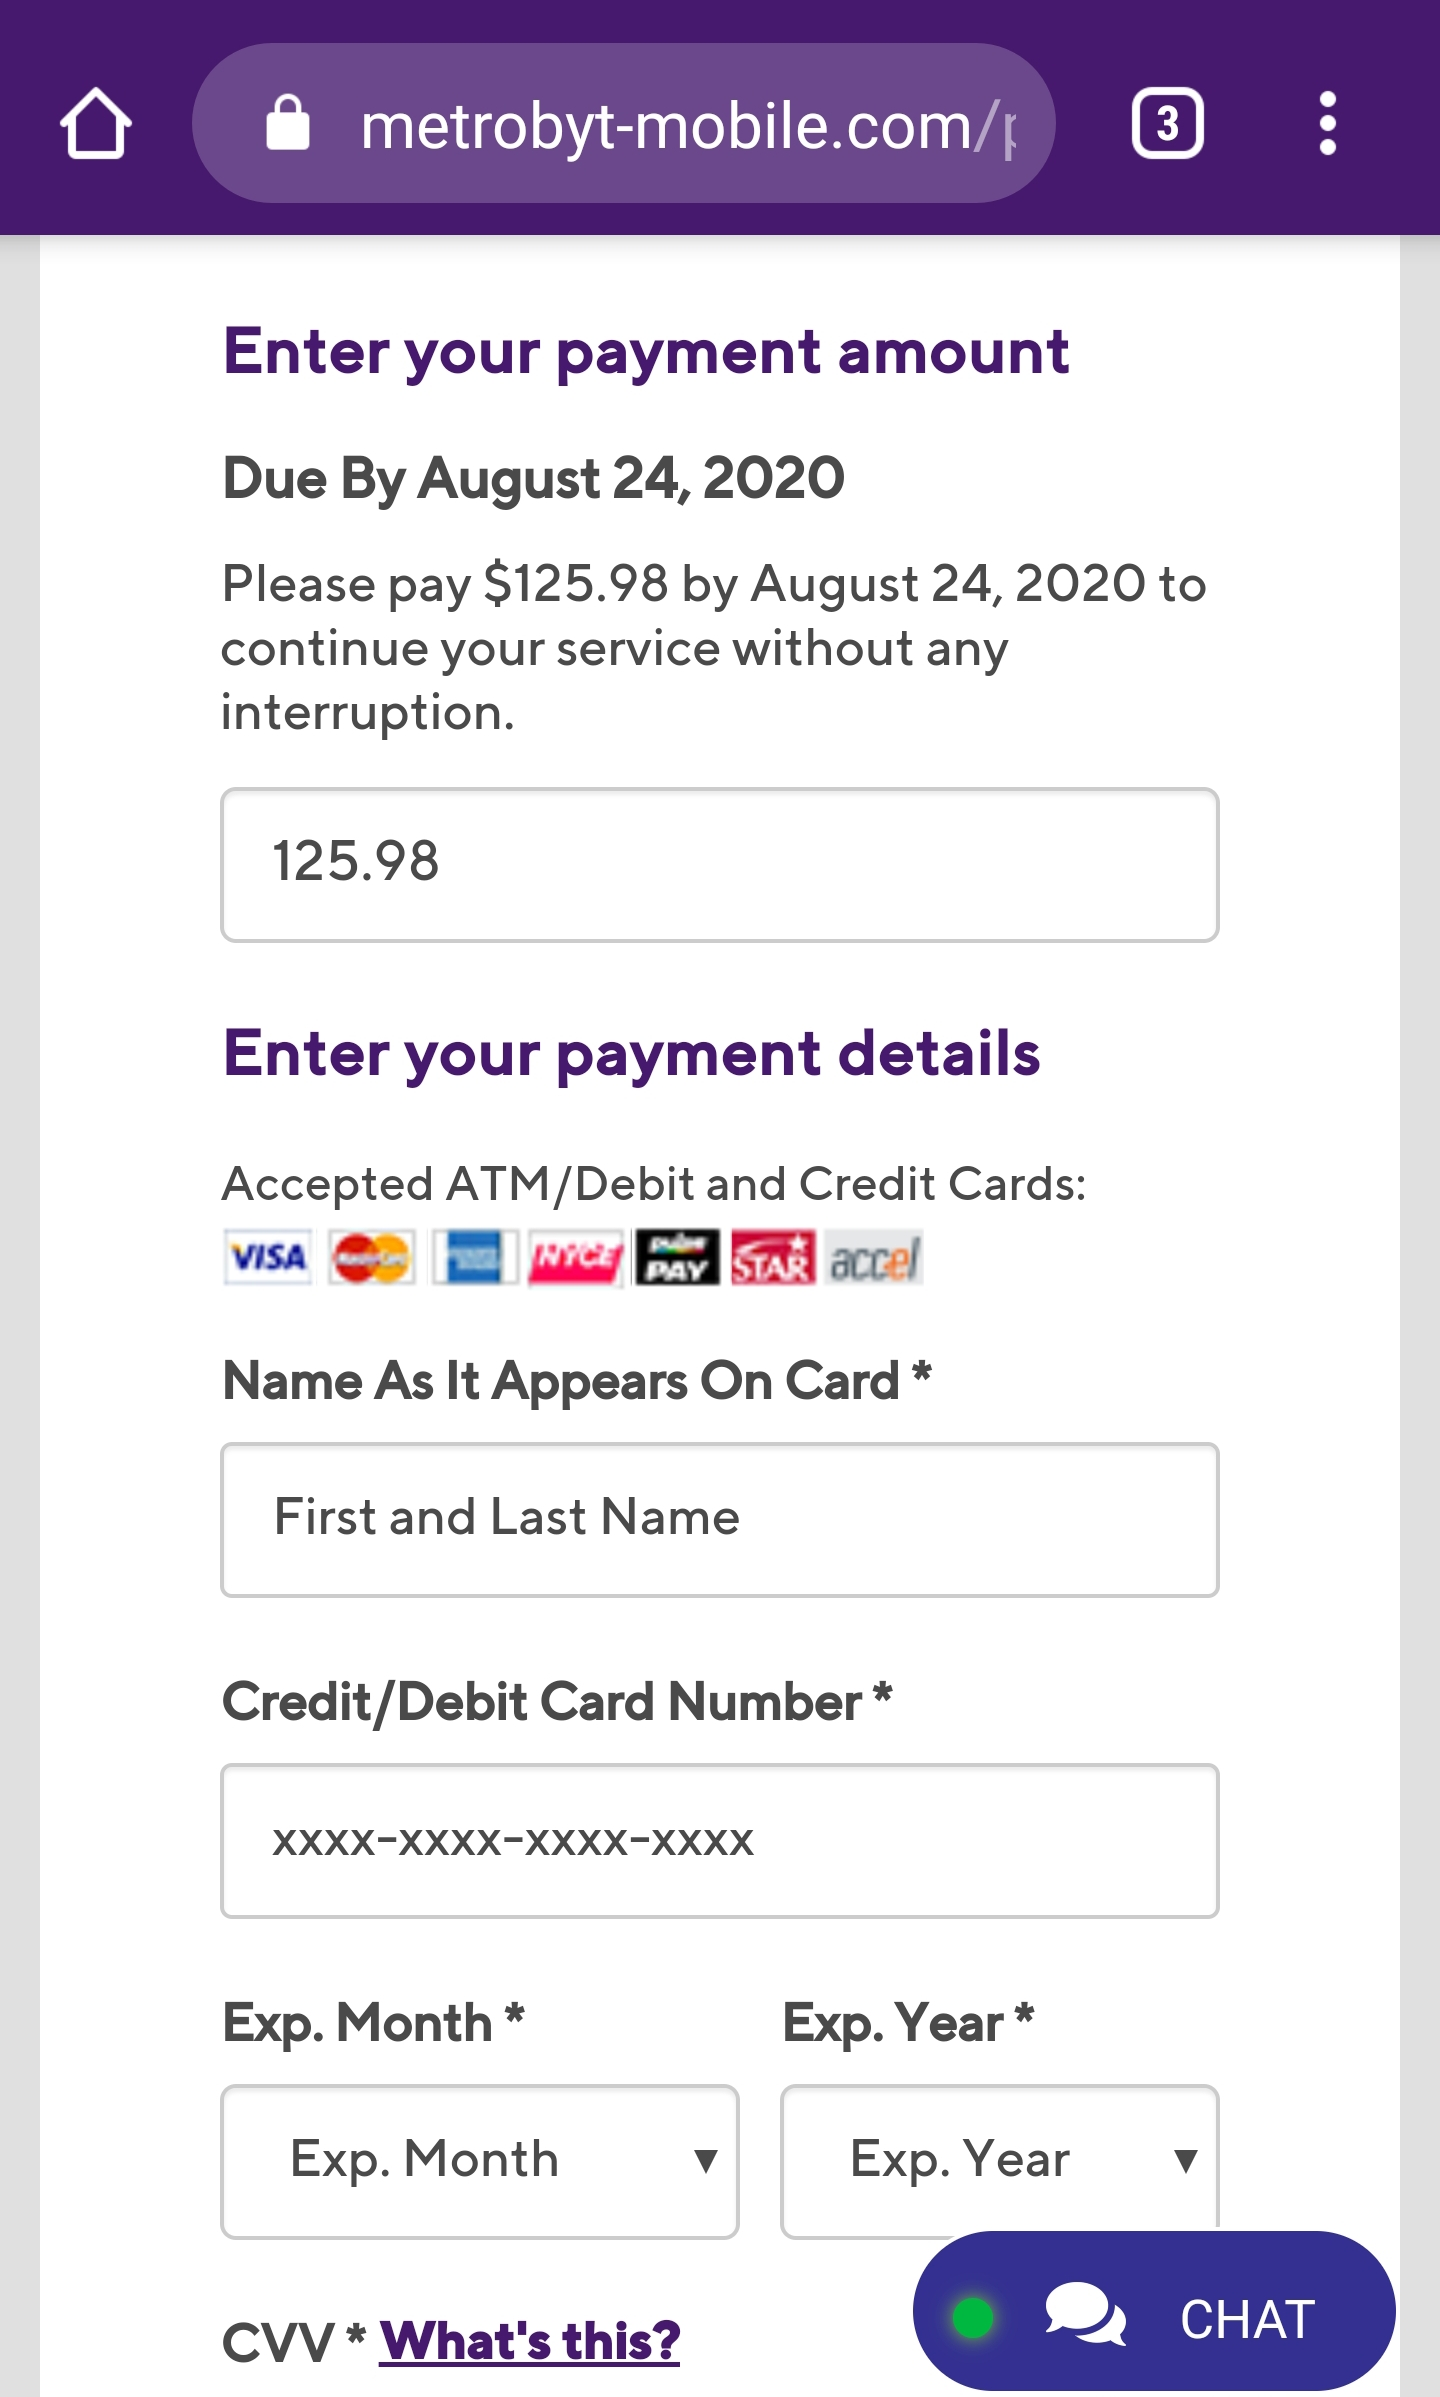 Metropcs Payment Extension : metropcs, payment, extension, MetroPCS, Reviews, Metropcs.com, Sitejabber